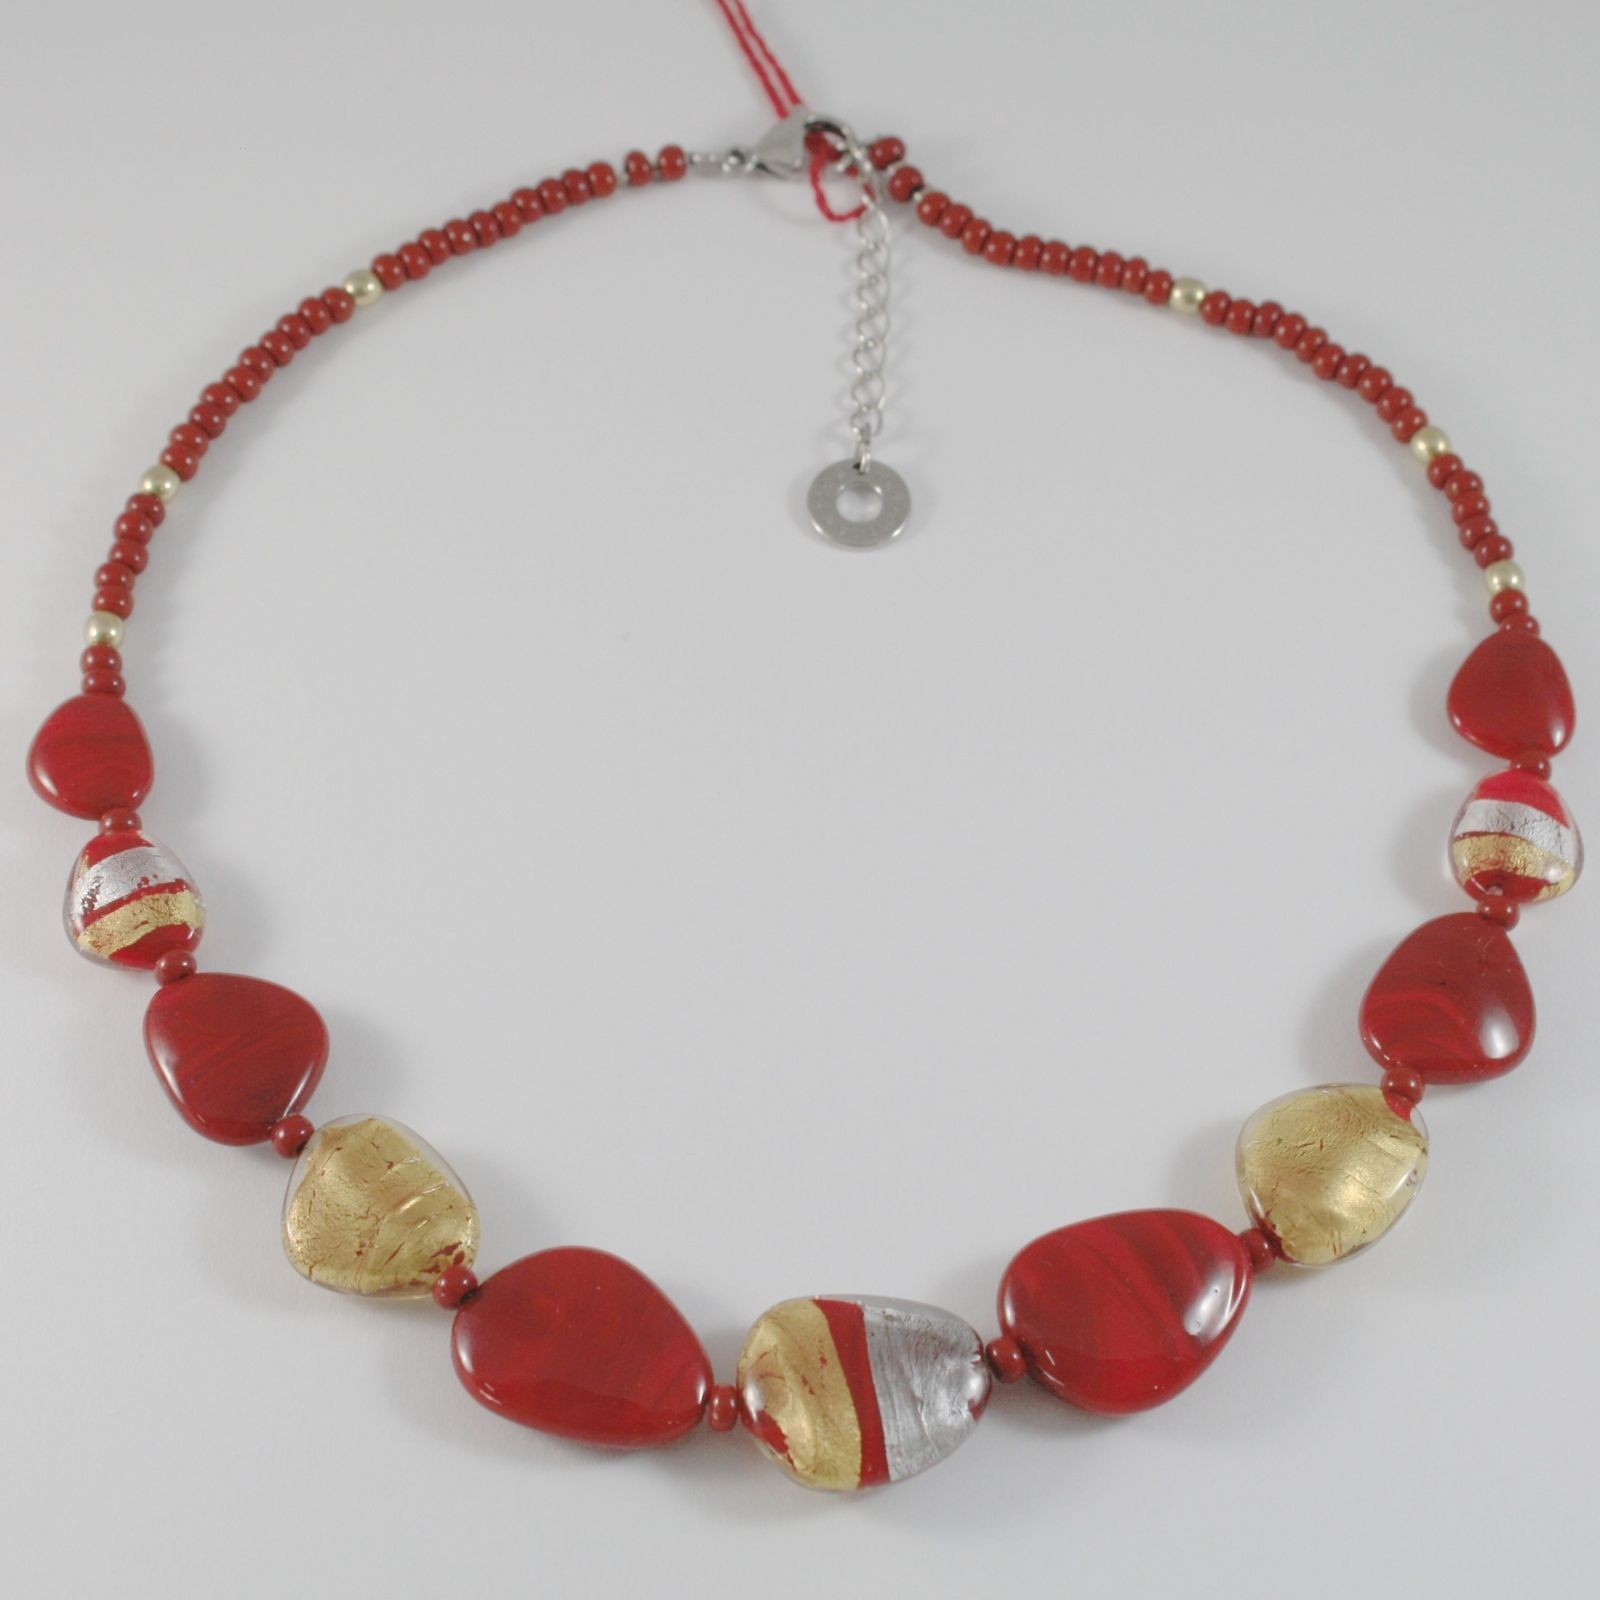 ANTICA MURRINA VENEZIA STRIPED NECKLACE WITH RED, SILVER AND GOLD FLAT DROPS